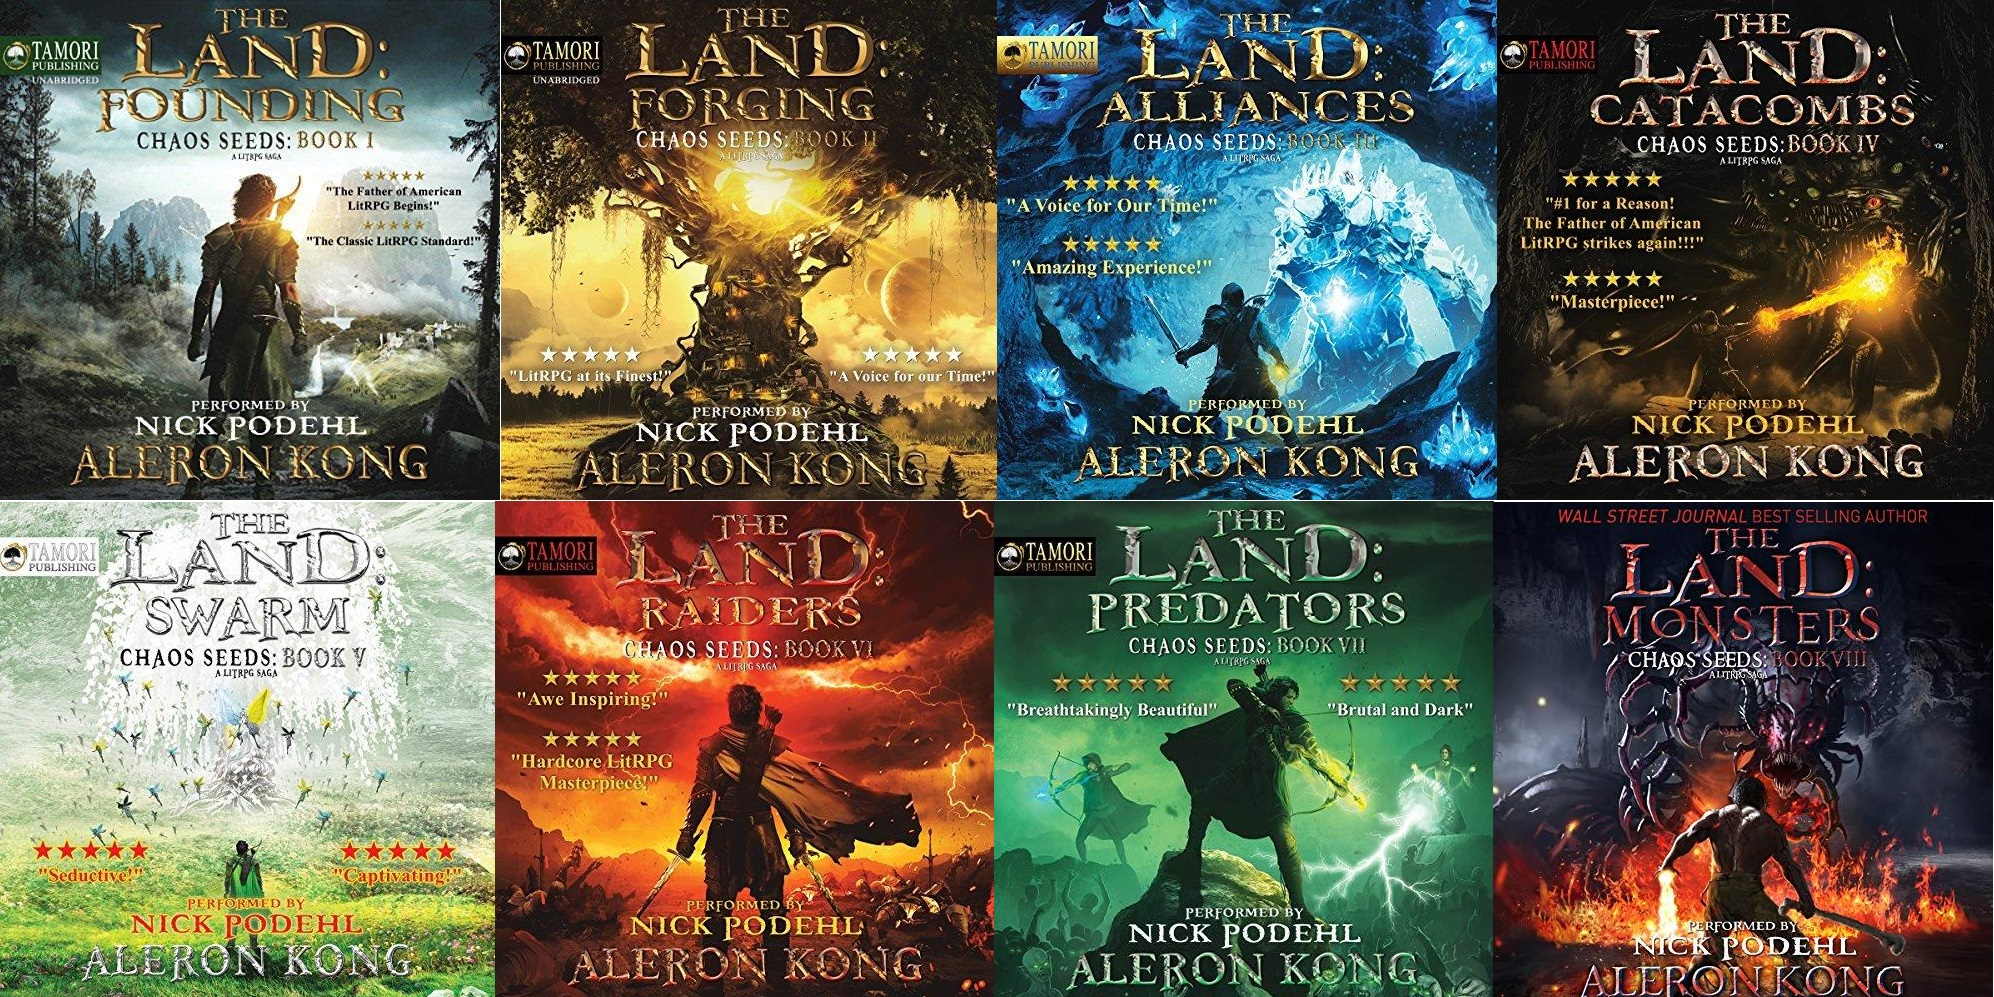 Chaos Seeds Series Book 1-8 - Aleron Kong